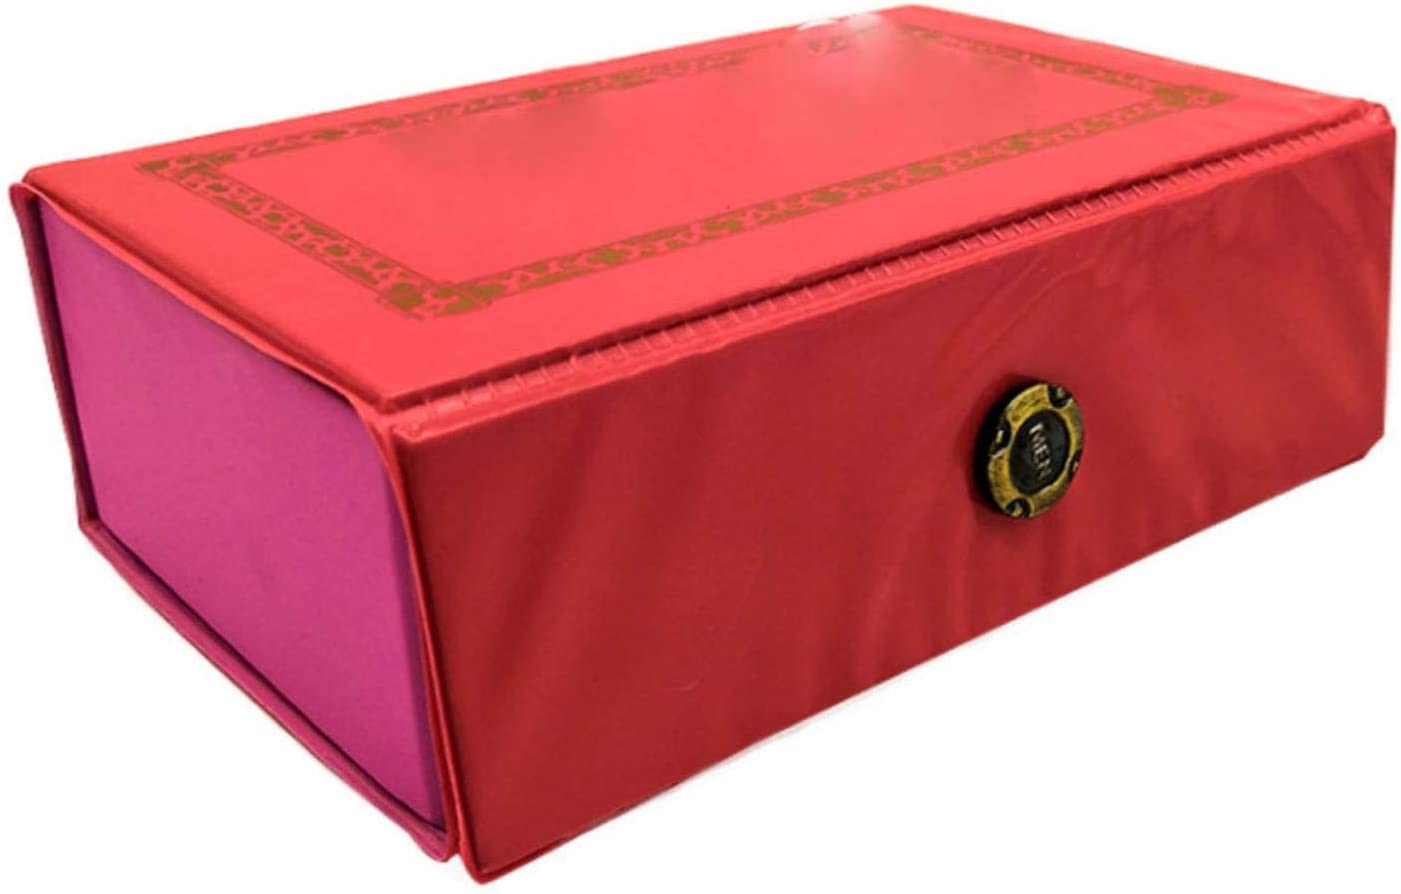 N\C Exquisite Leather Box Pocket Mahjong Mini OFFer Tr Portable Travel Ranking TOP2